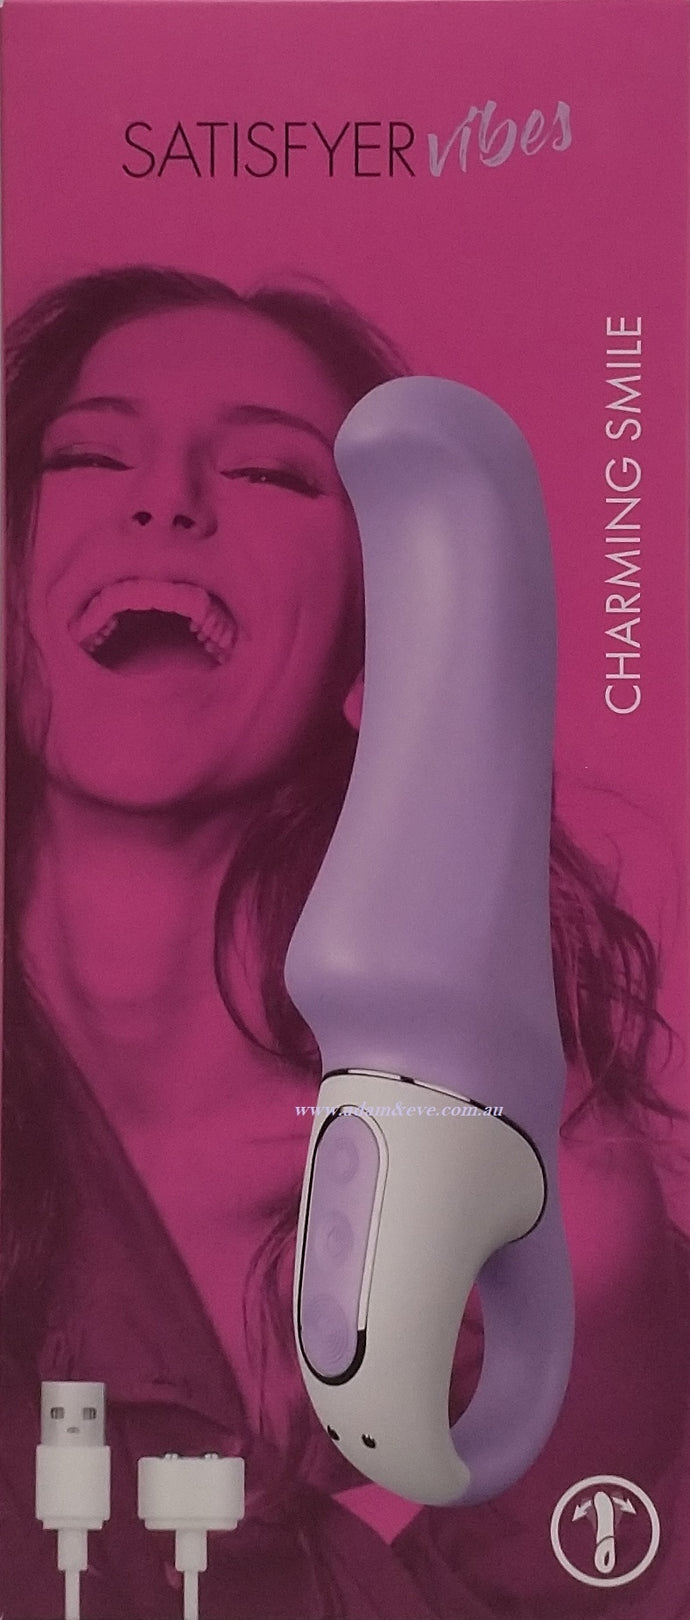 Satisfyer Vibes - Charming Smile